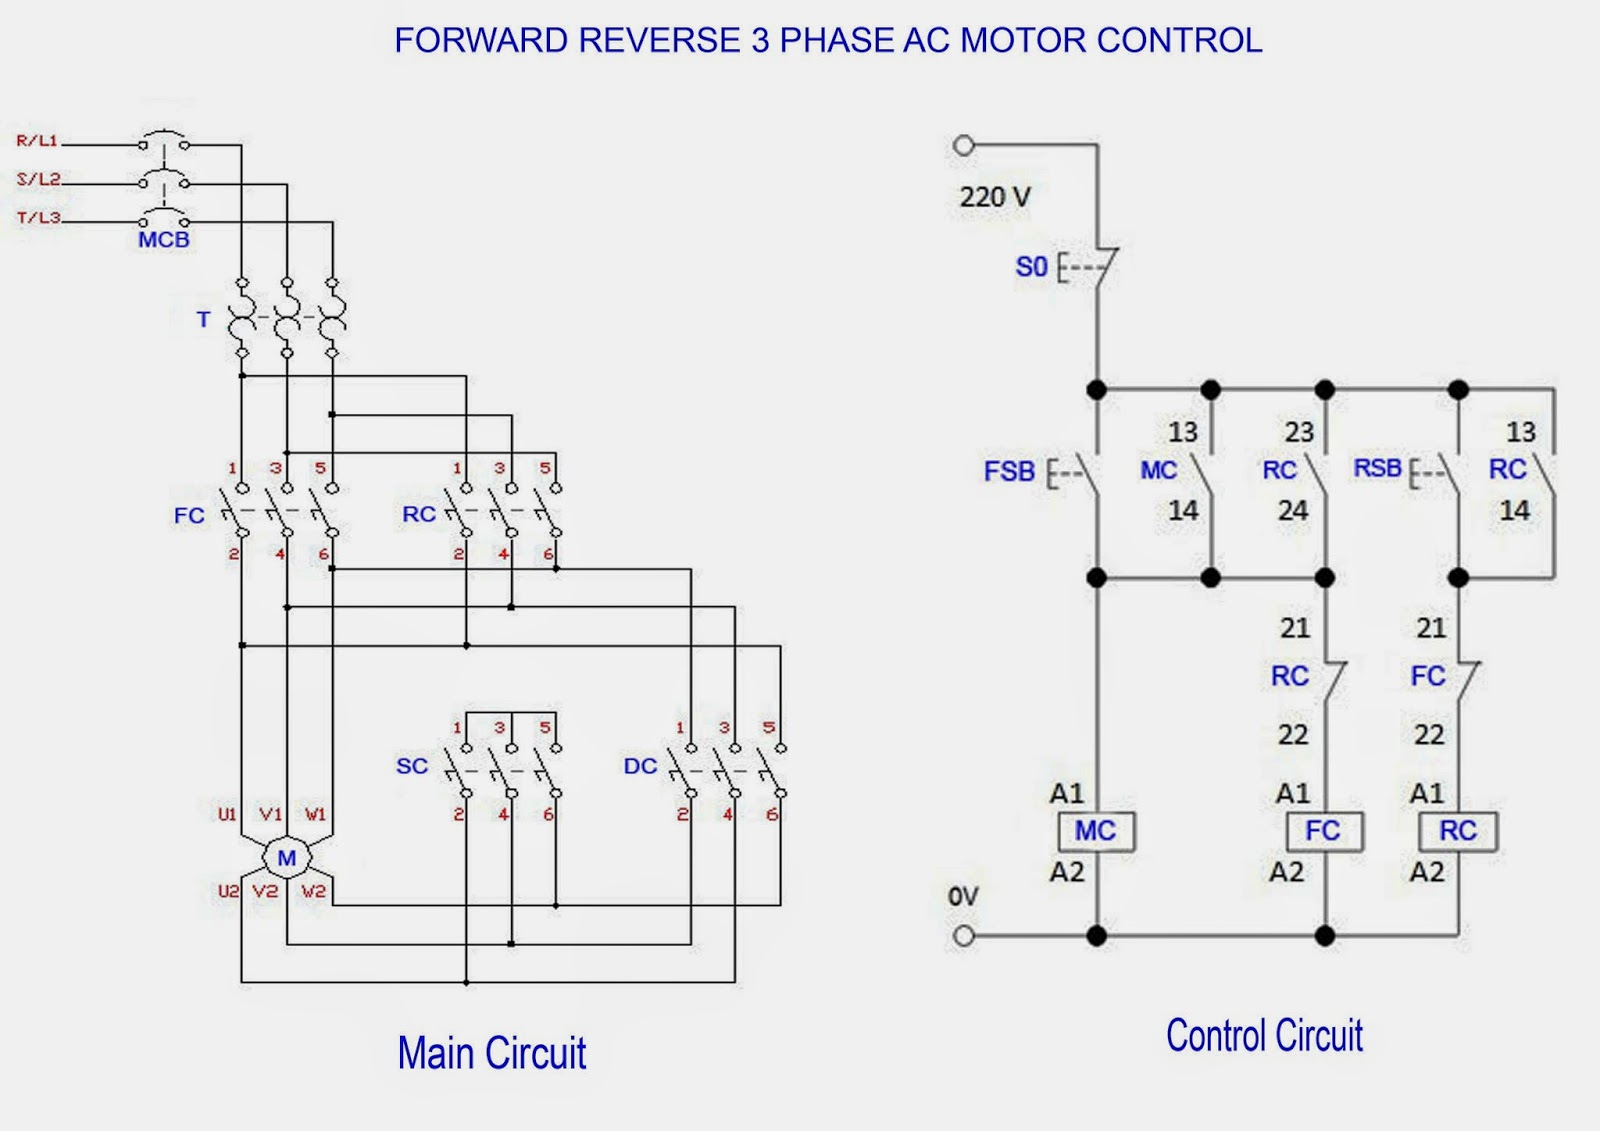 forward reverse 3 phase ac motor control wiring diagram electrical 6 wire 3  phase motor wiring